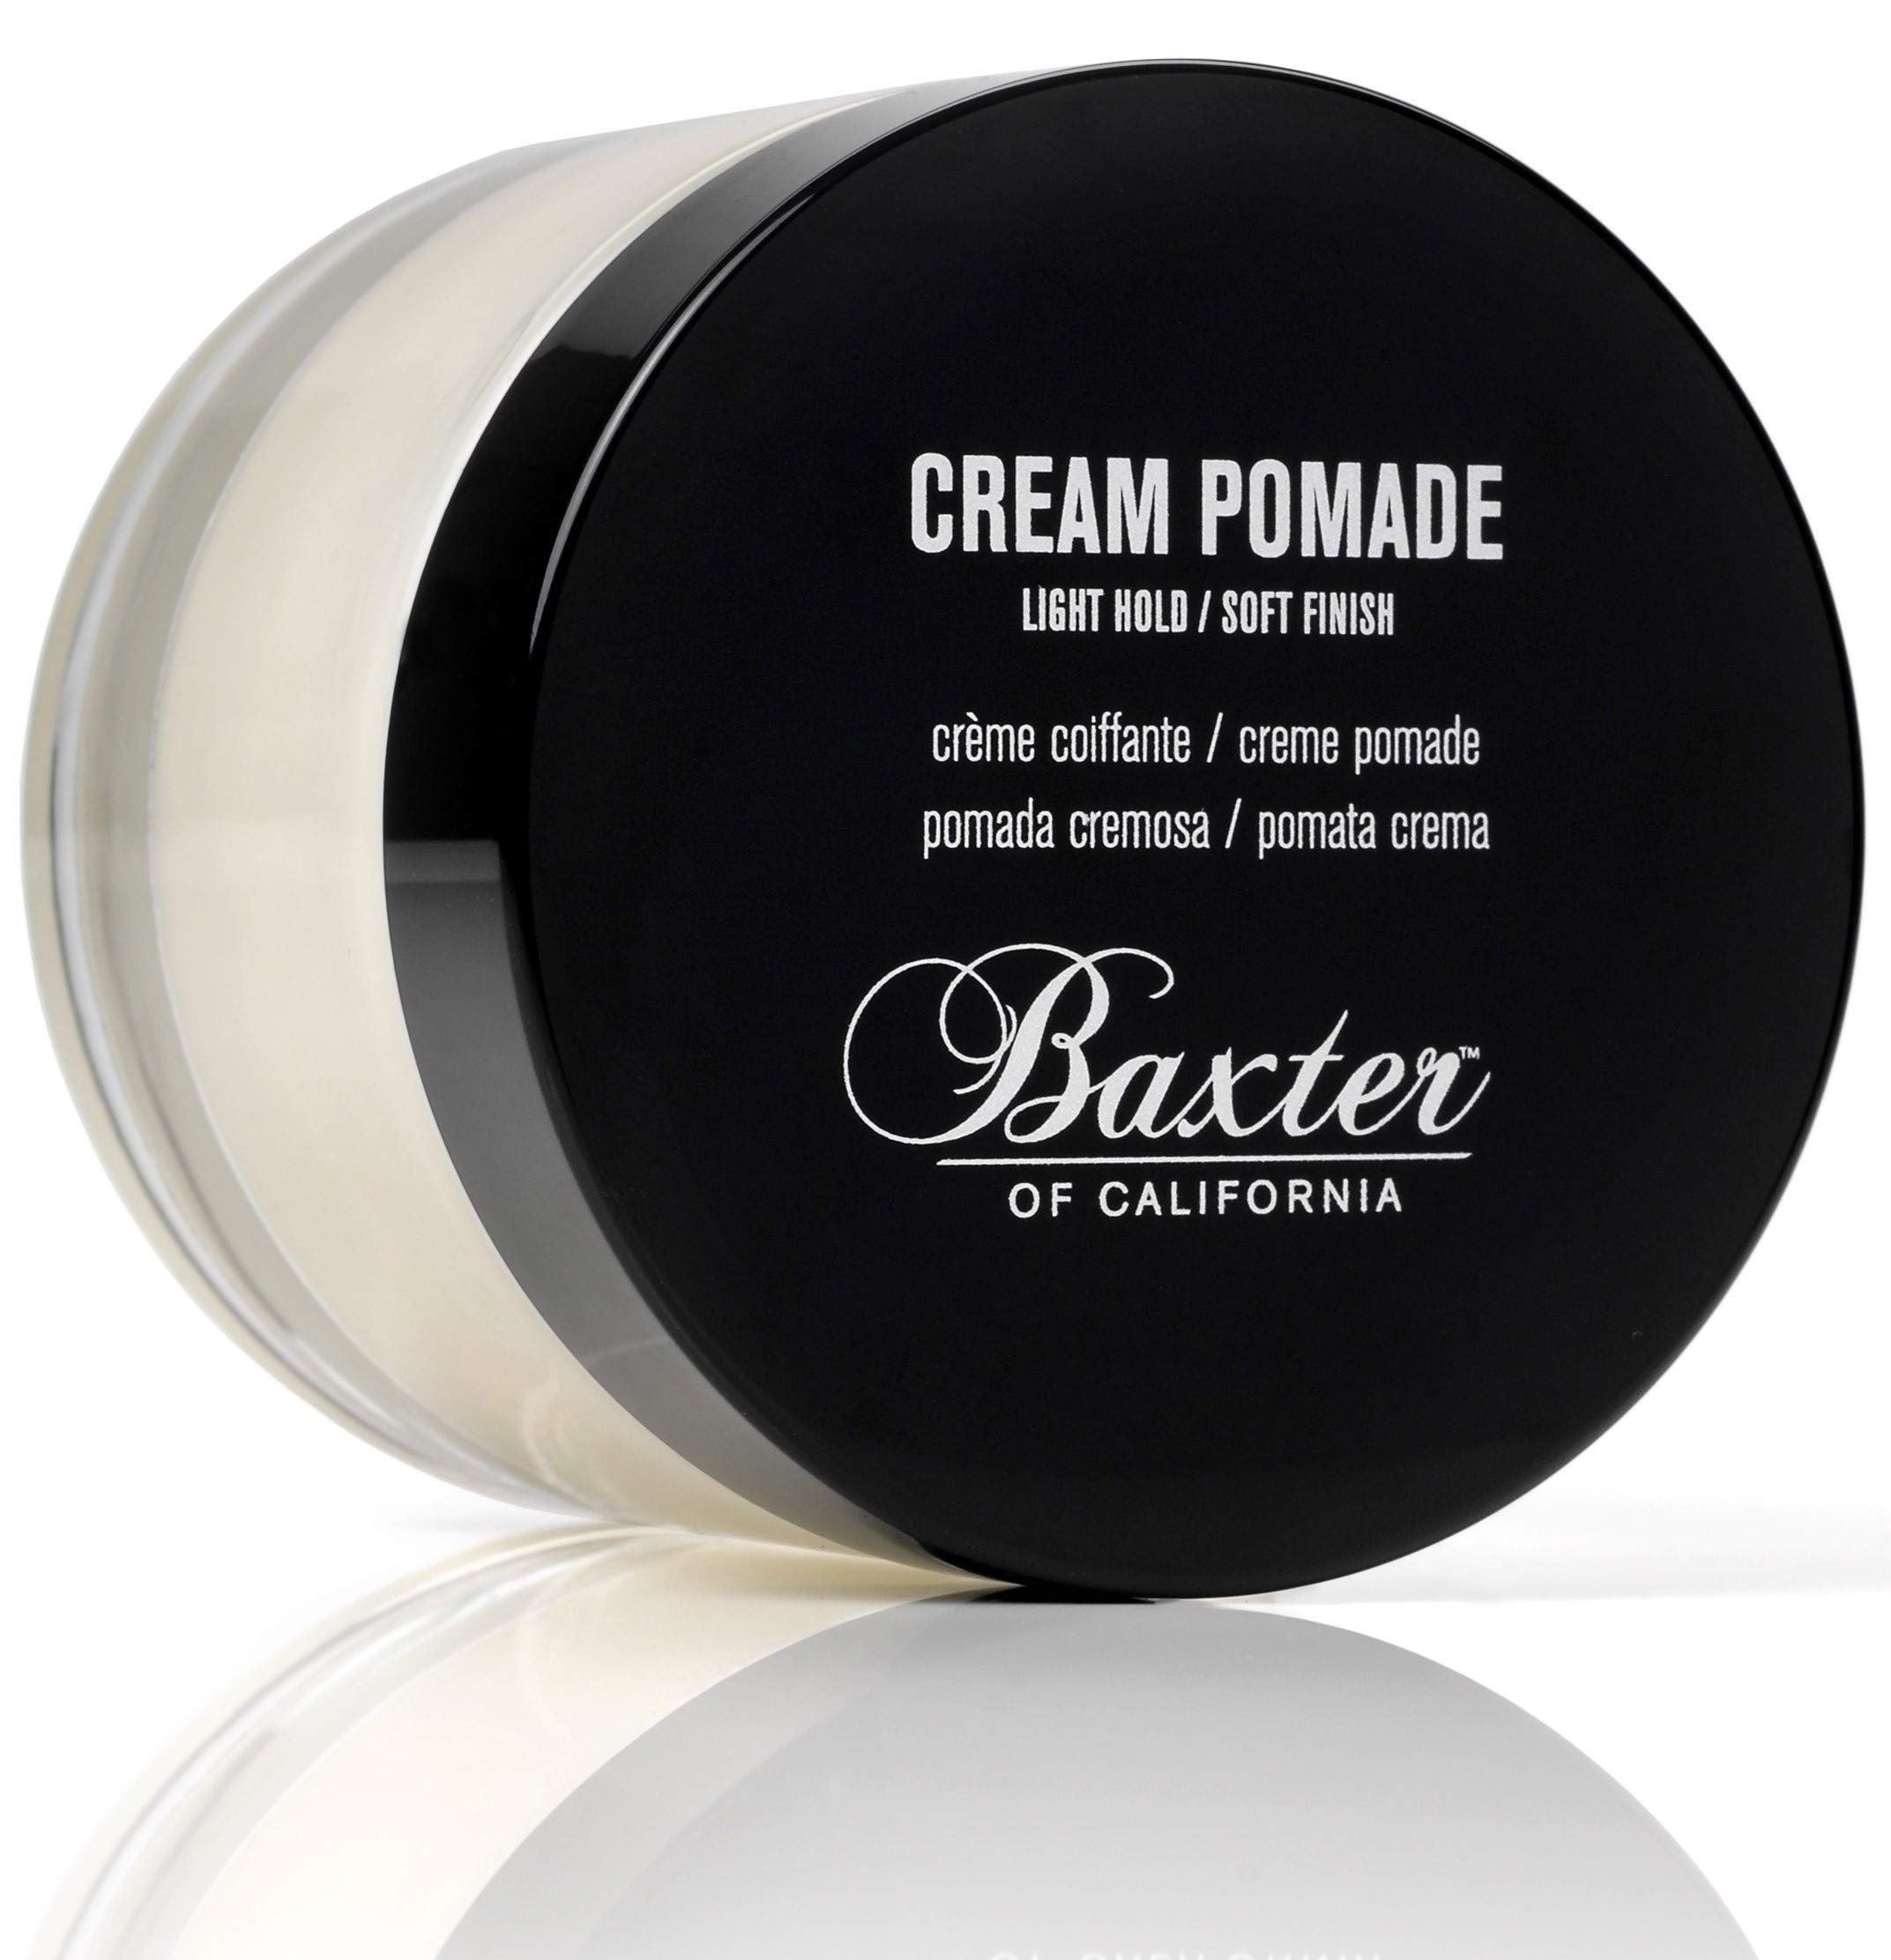 Baxter of California Cream Pomade, Natural Finish/Light Hold, Hair Pomade for Men, 2 fl. oz. by Baxter of California